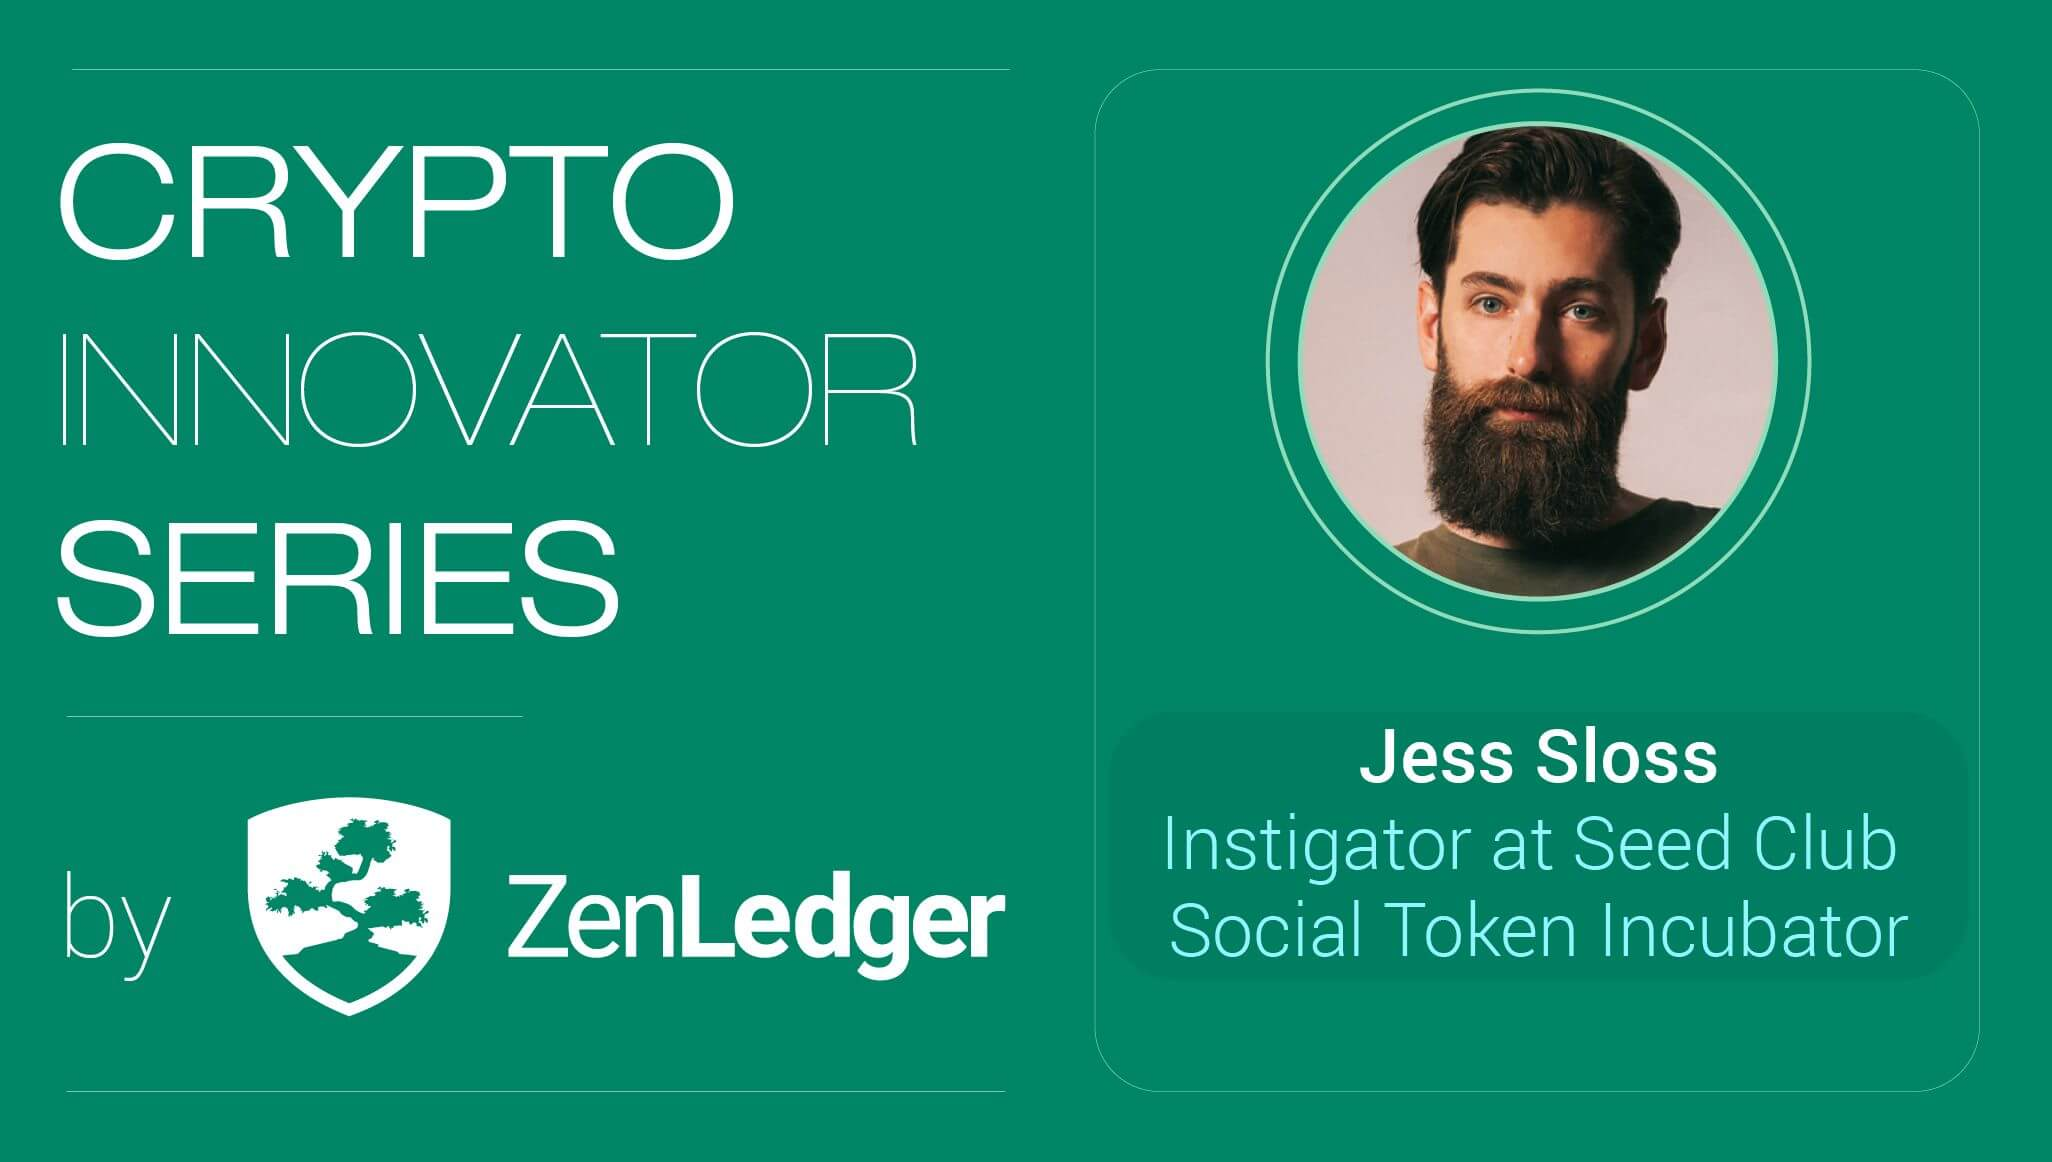 Crypto Innovator Series with Guest Jess Sloss from Seed Club